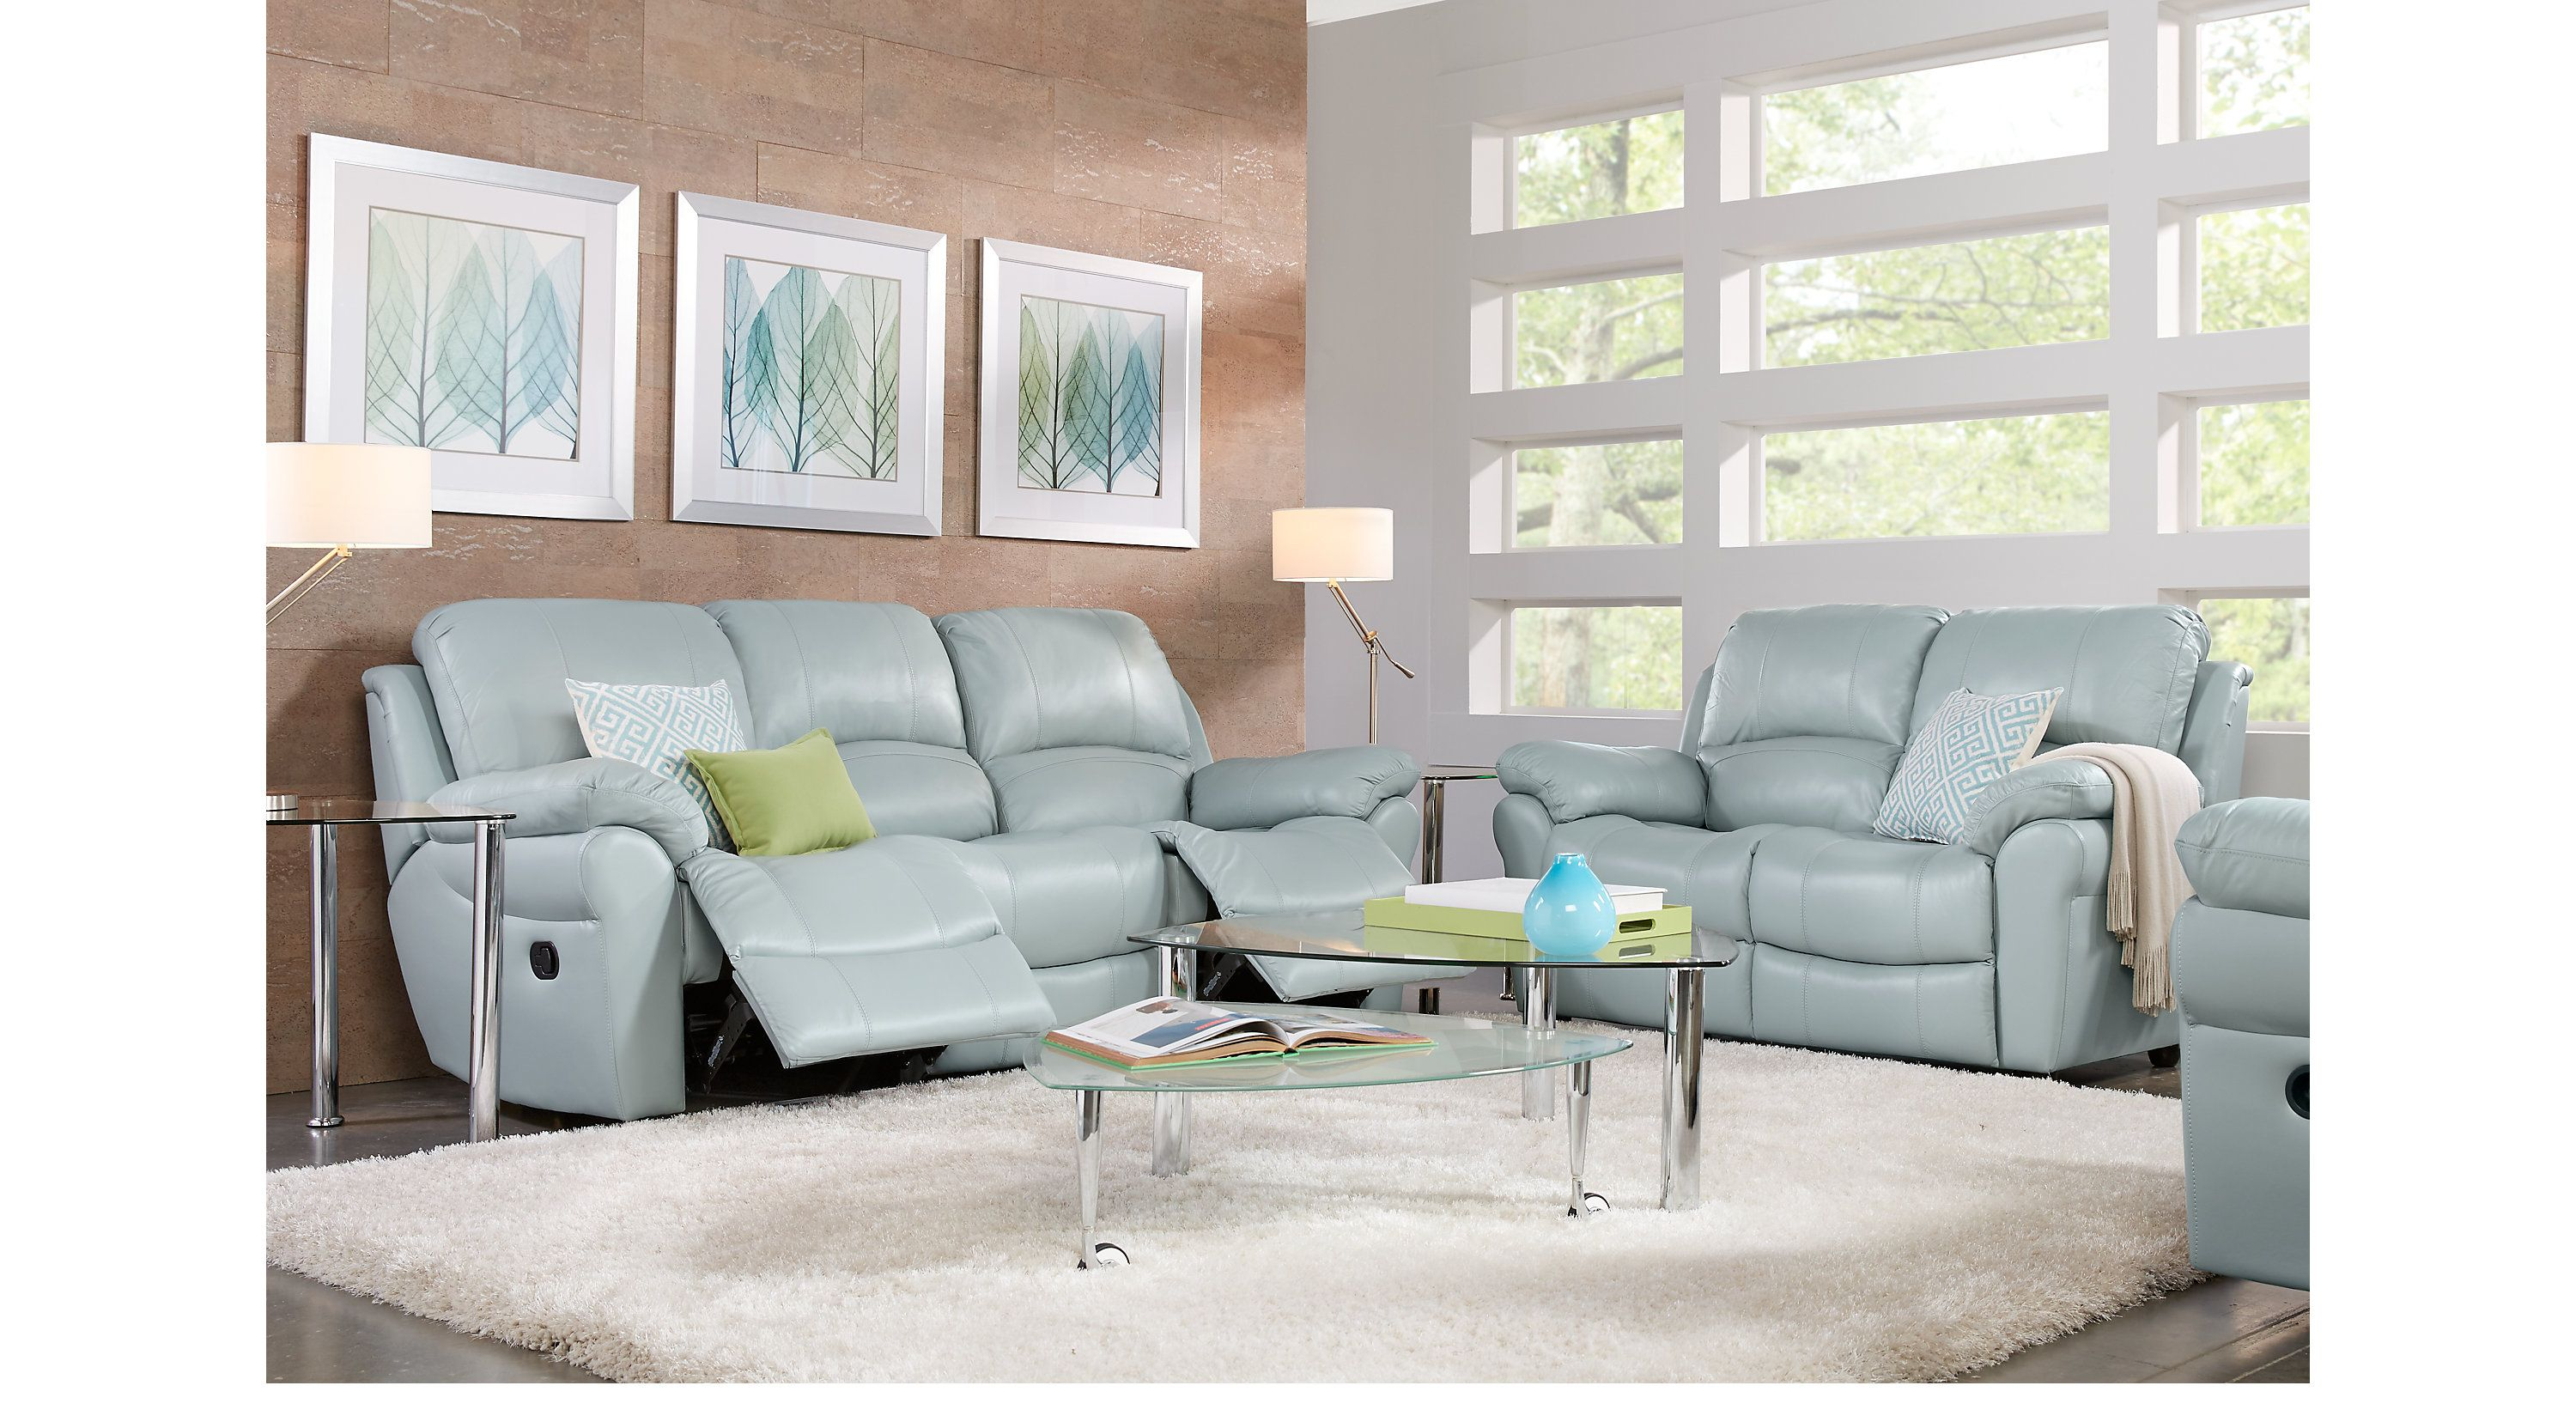 Rooms To Go Living Room Sofas Average Rug Size Vercelli Aqua Leather 5 Pc With Reclining Sofa In 2018 Blue